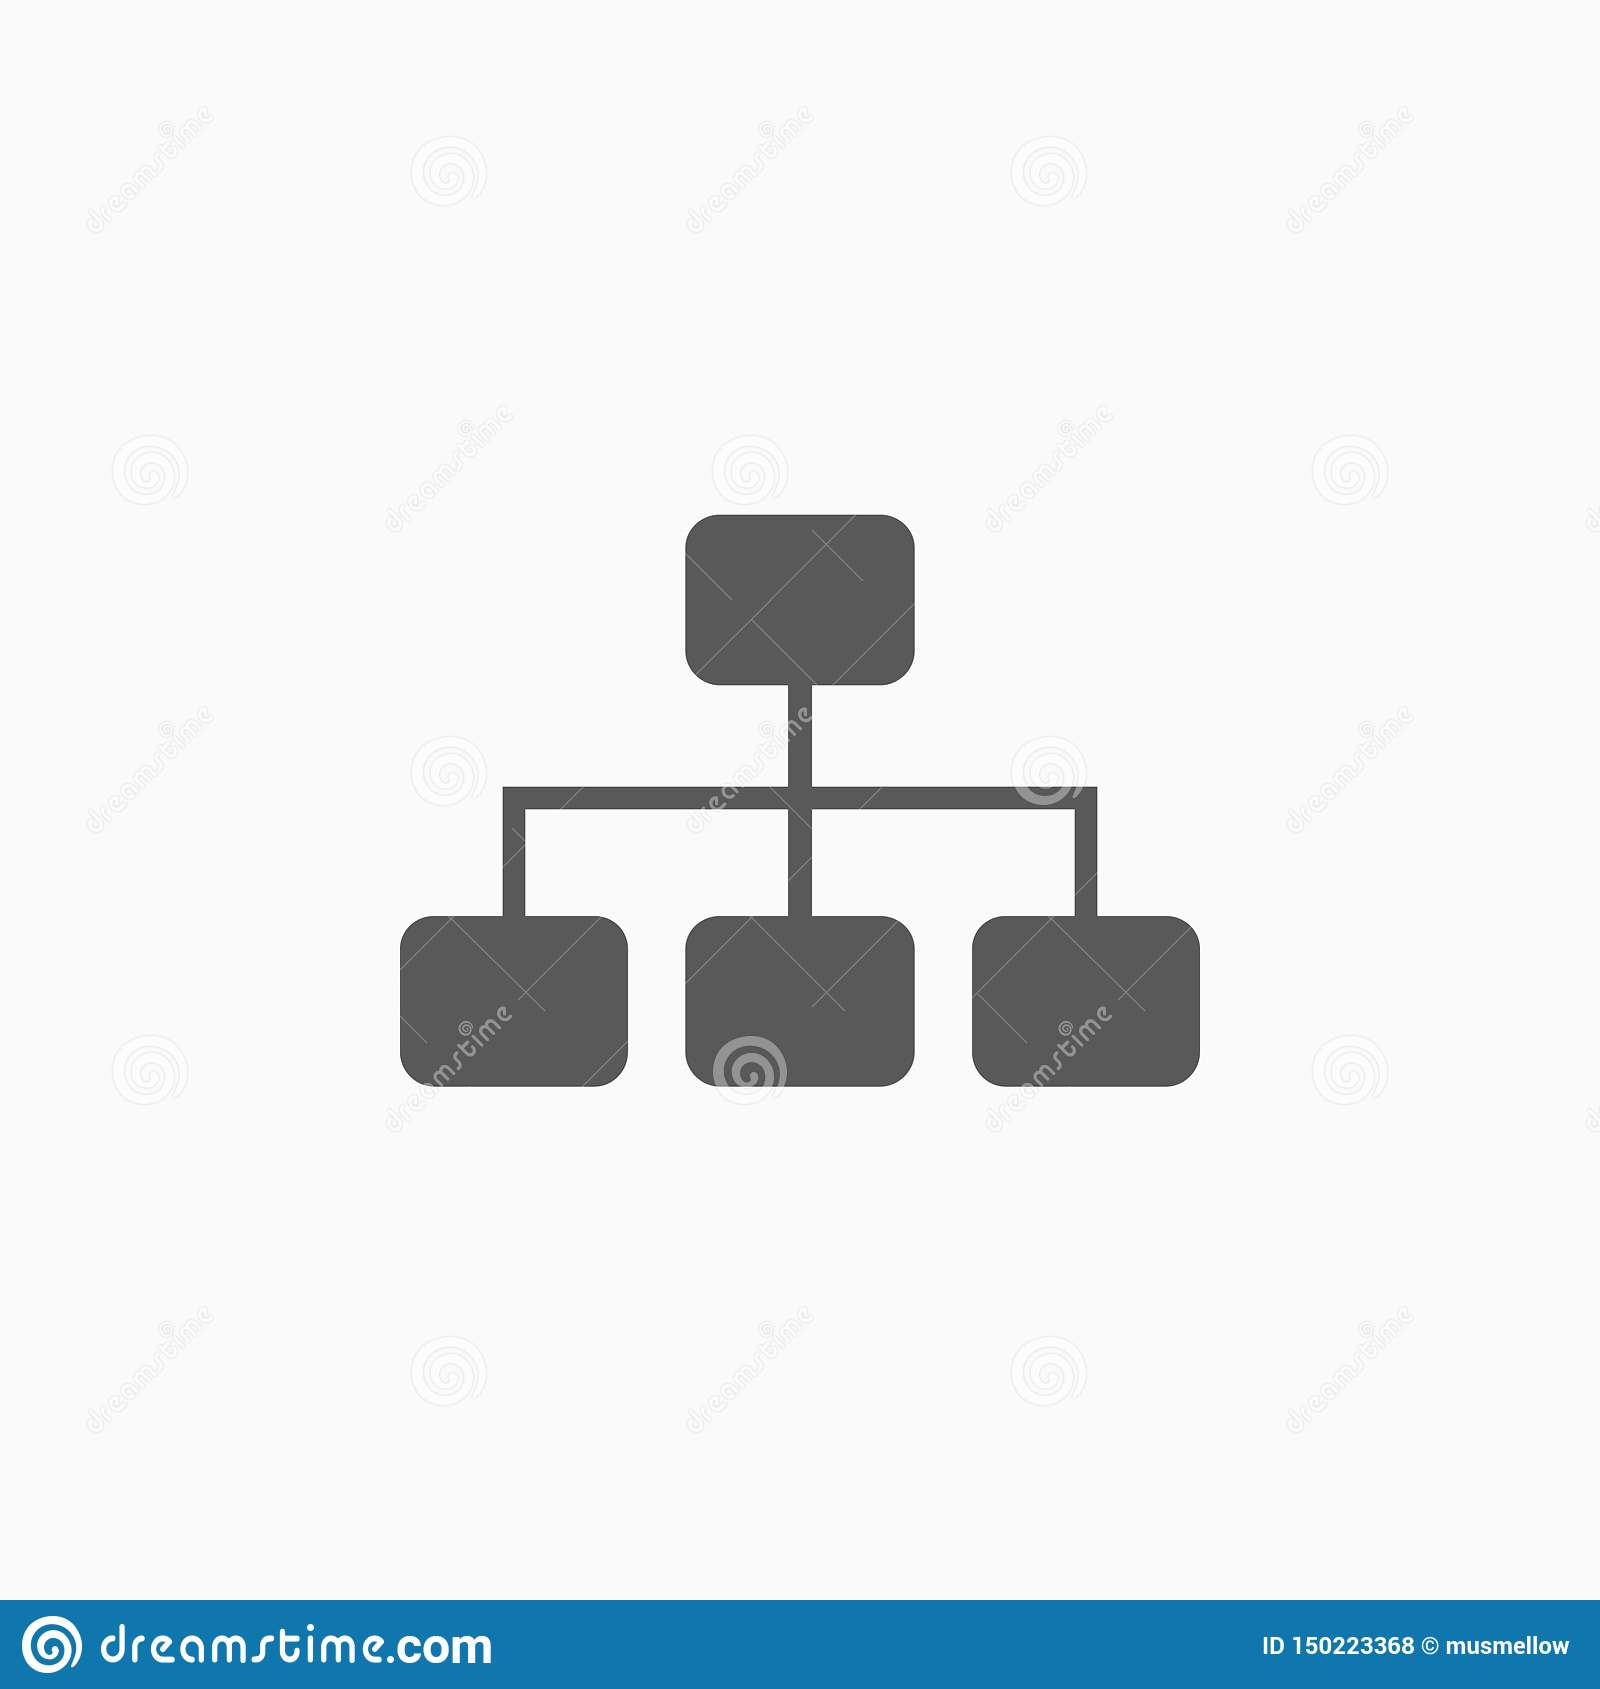 Site map icon, mind map, mind mapping, flowchart